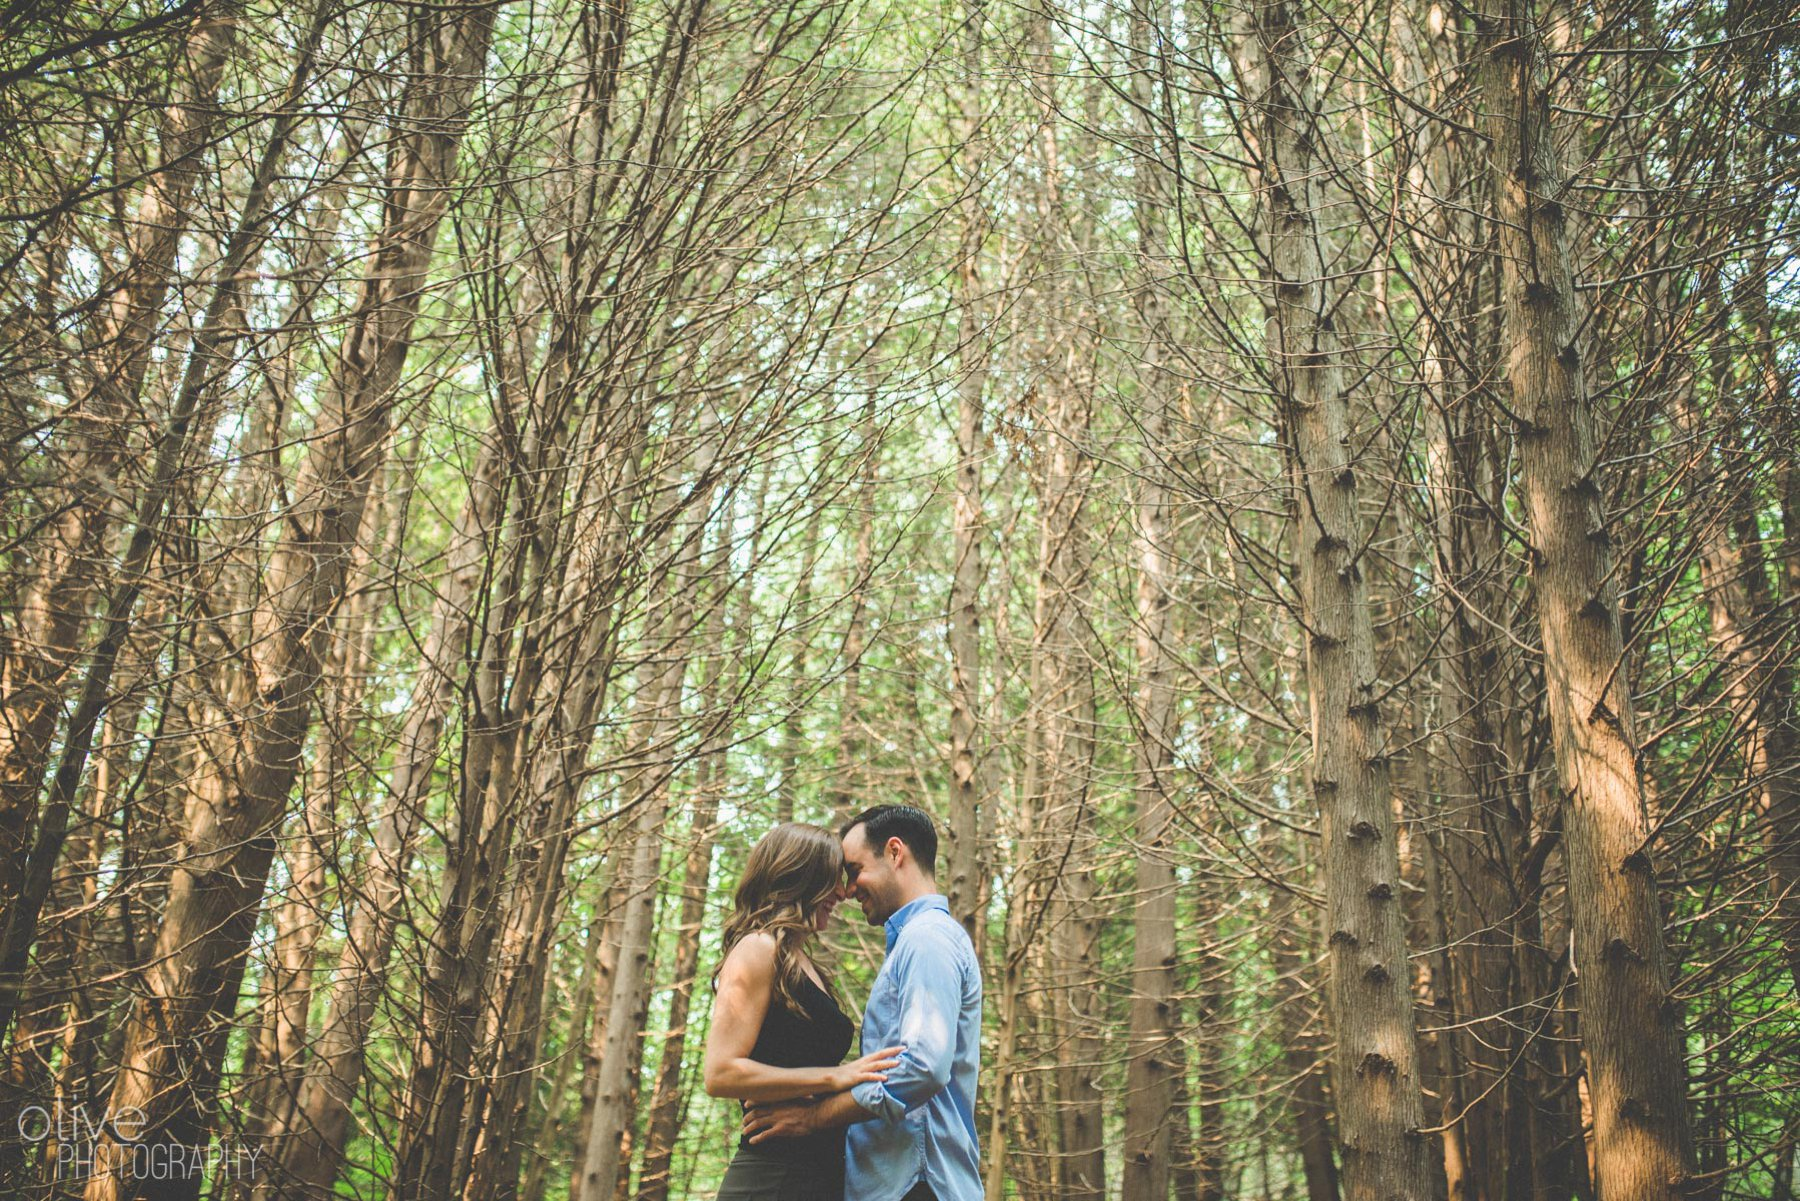 Toronto Wedding Photographer - Olive Photography_0786